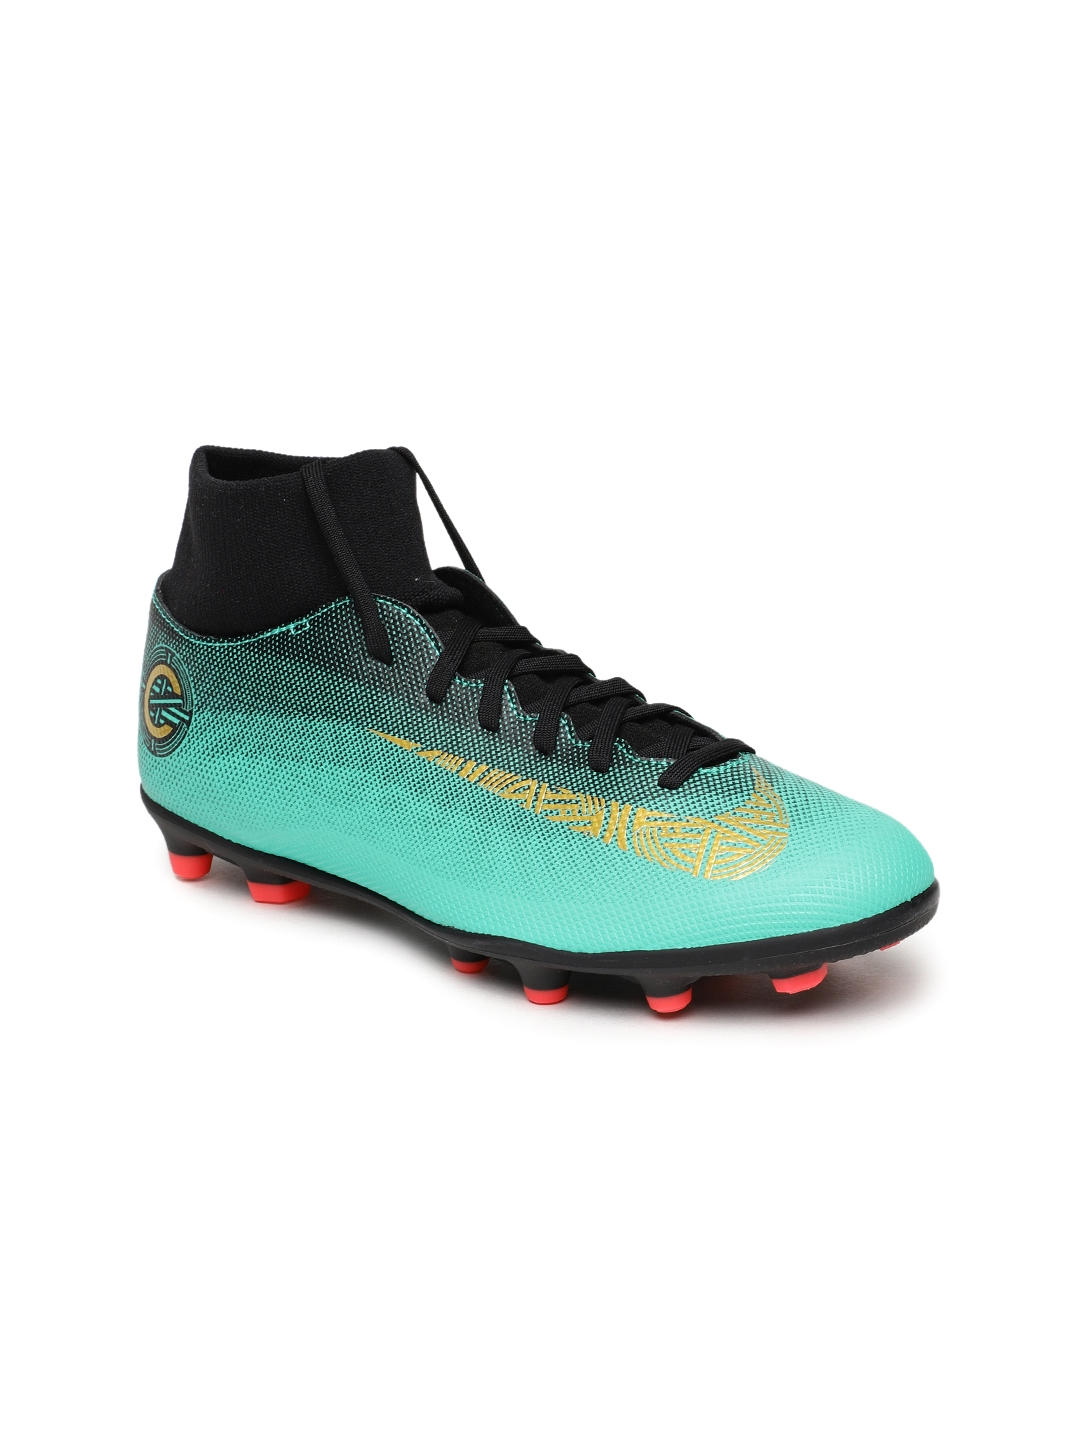 1d02f9ec8 Buy Nike Unisex Green & Black SUPERFLY 6 CLUB CR7 FG/MG Football ...